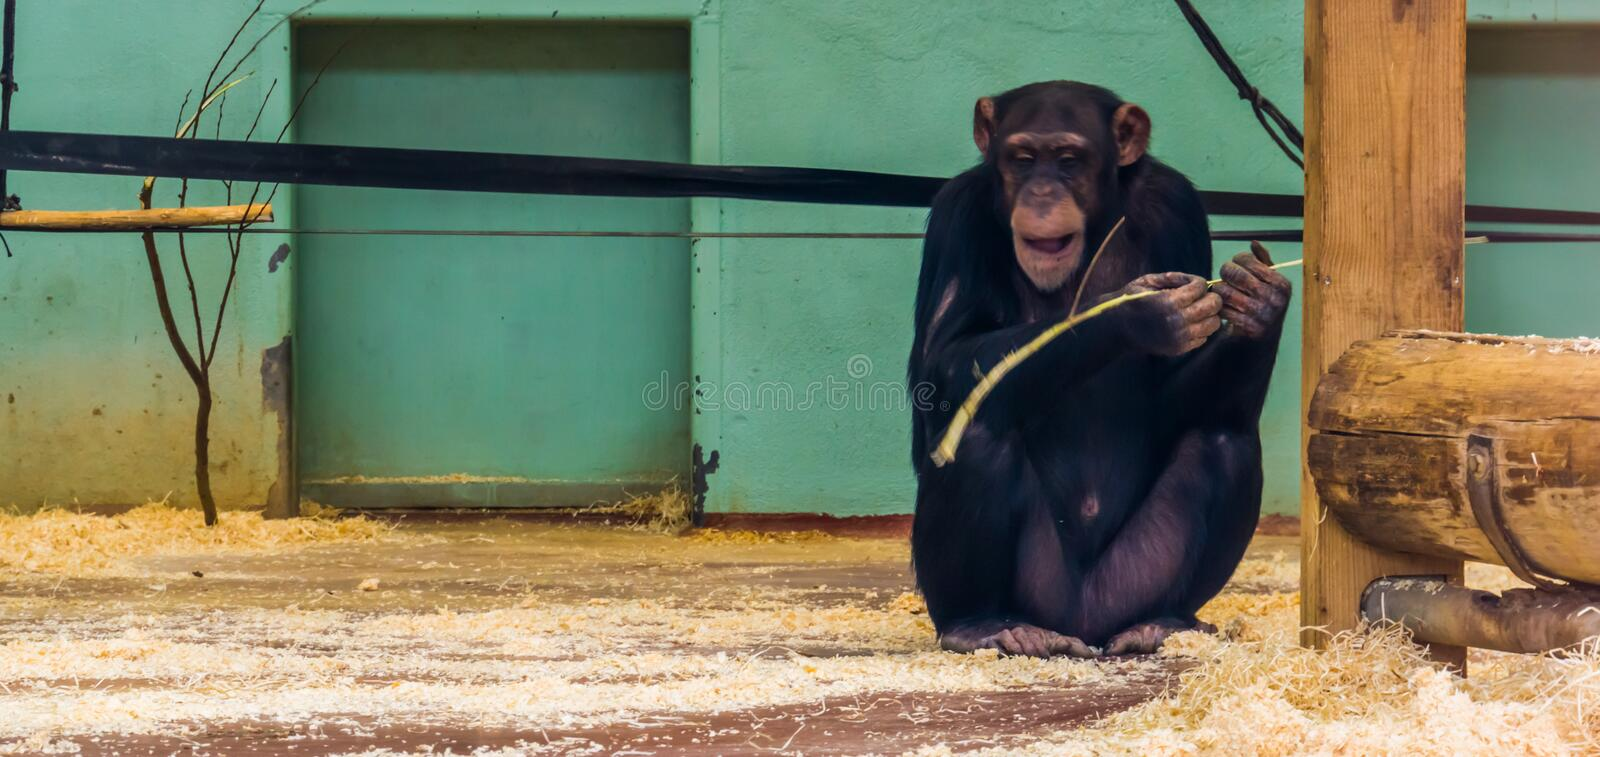 Chimpanzee holding a branch, popular pets and zoo animals. A Chimpanzee holding a branch, popular pets and zoo animals royalty free stock photo